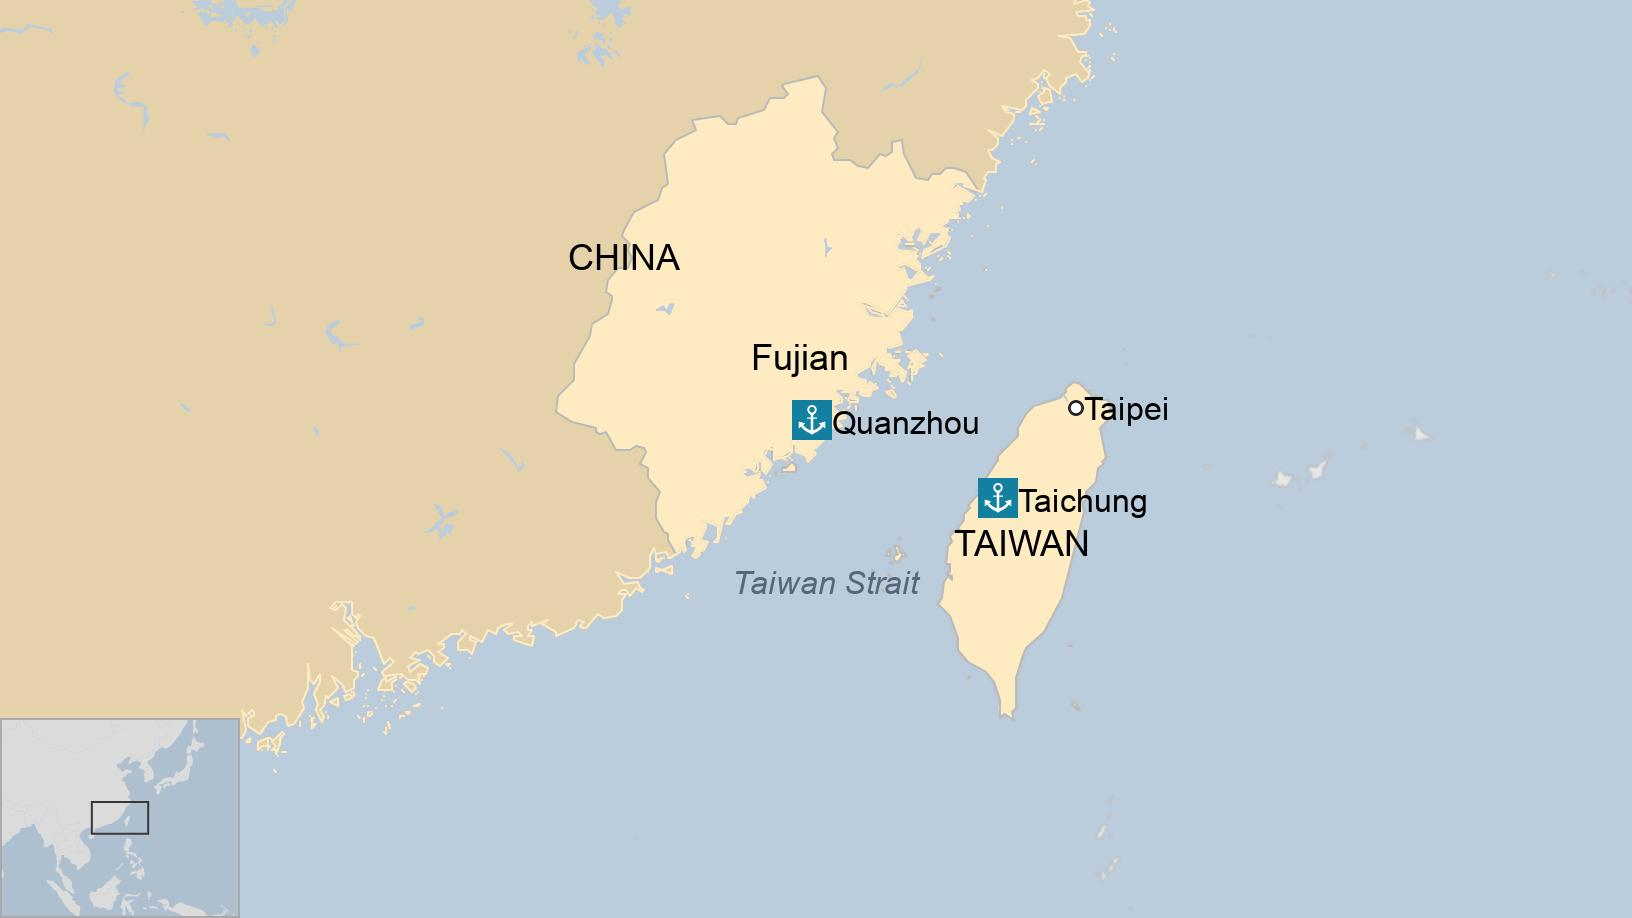 Taiwan Strait: Claim man who crossed sea in dinghy investigated